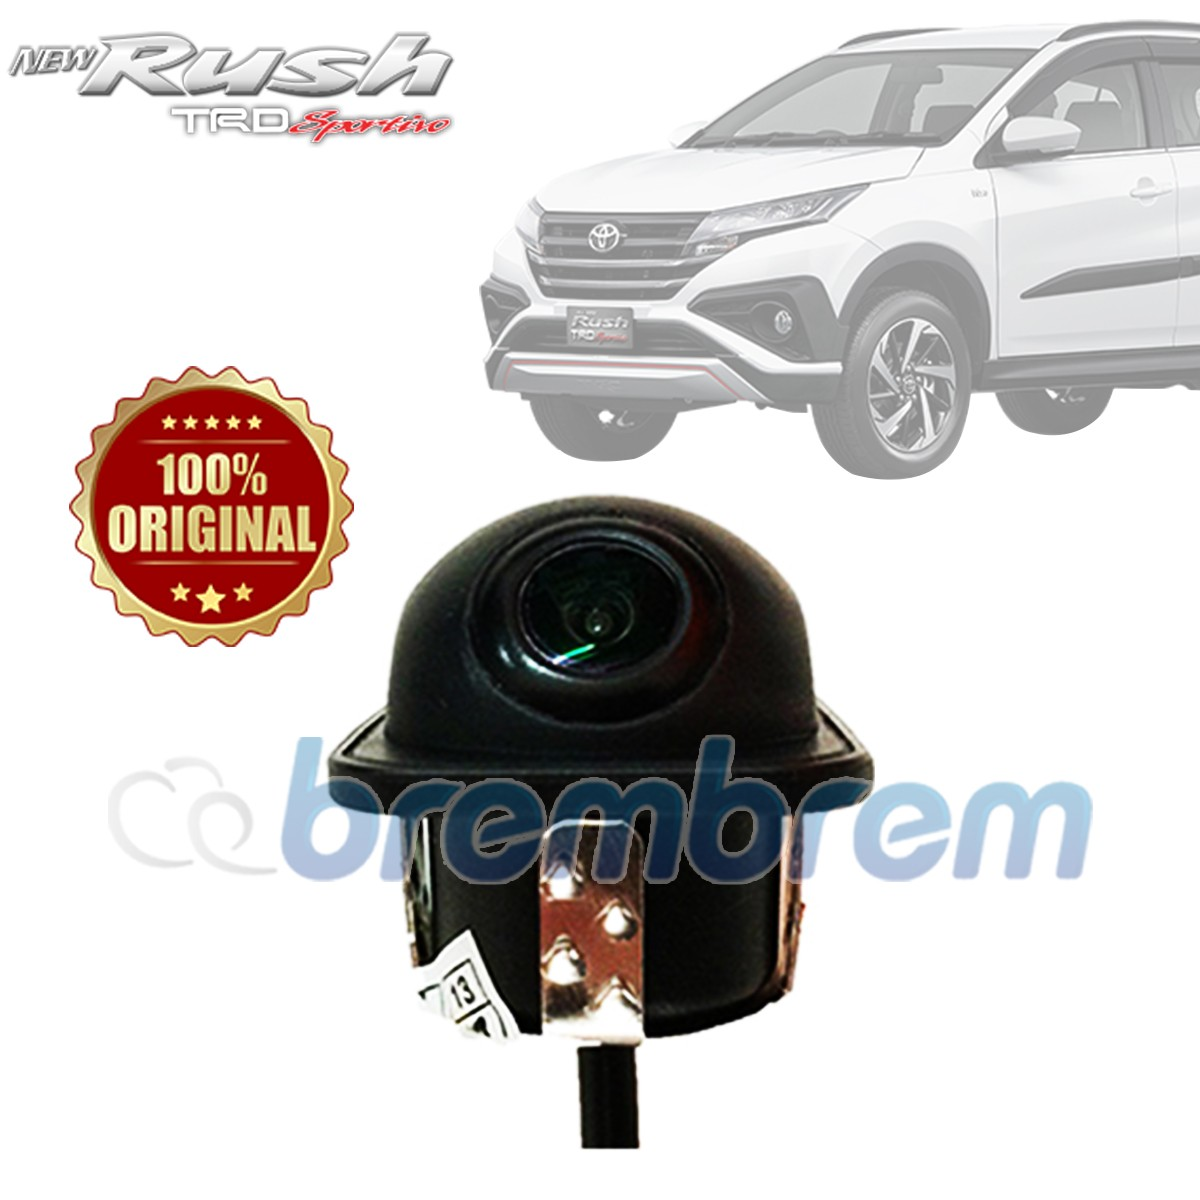 DIGICAM  - KAMERA MUNDUR TOYOTA ALL NEW RUSH